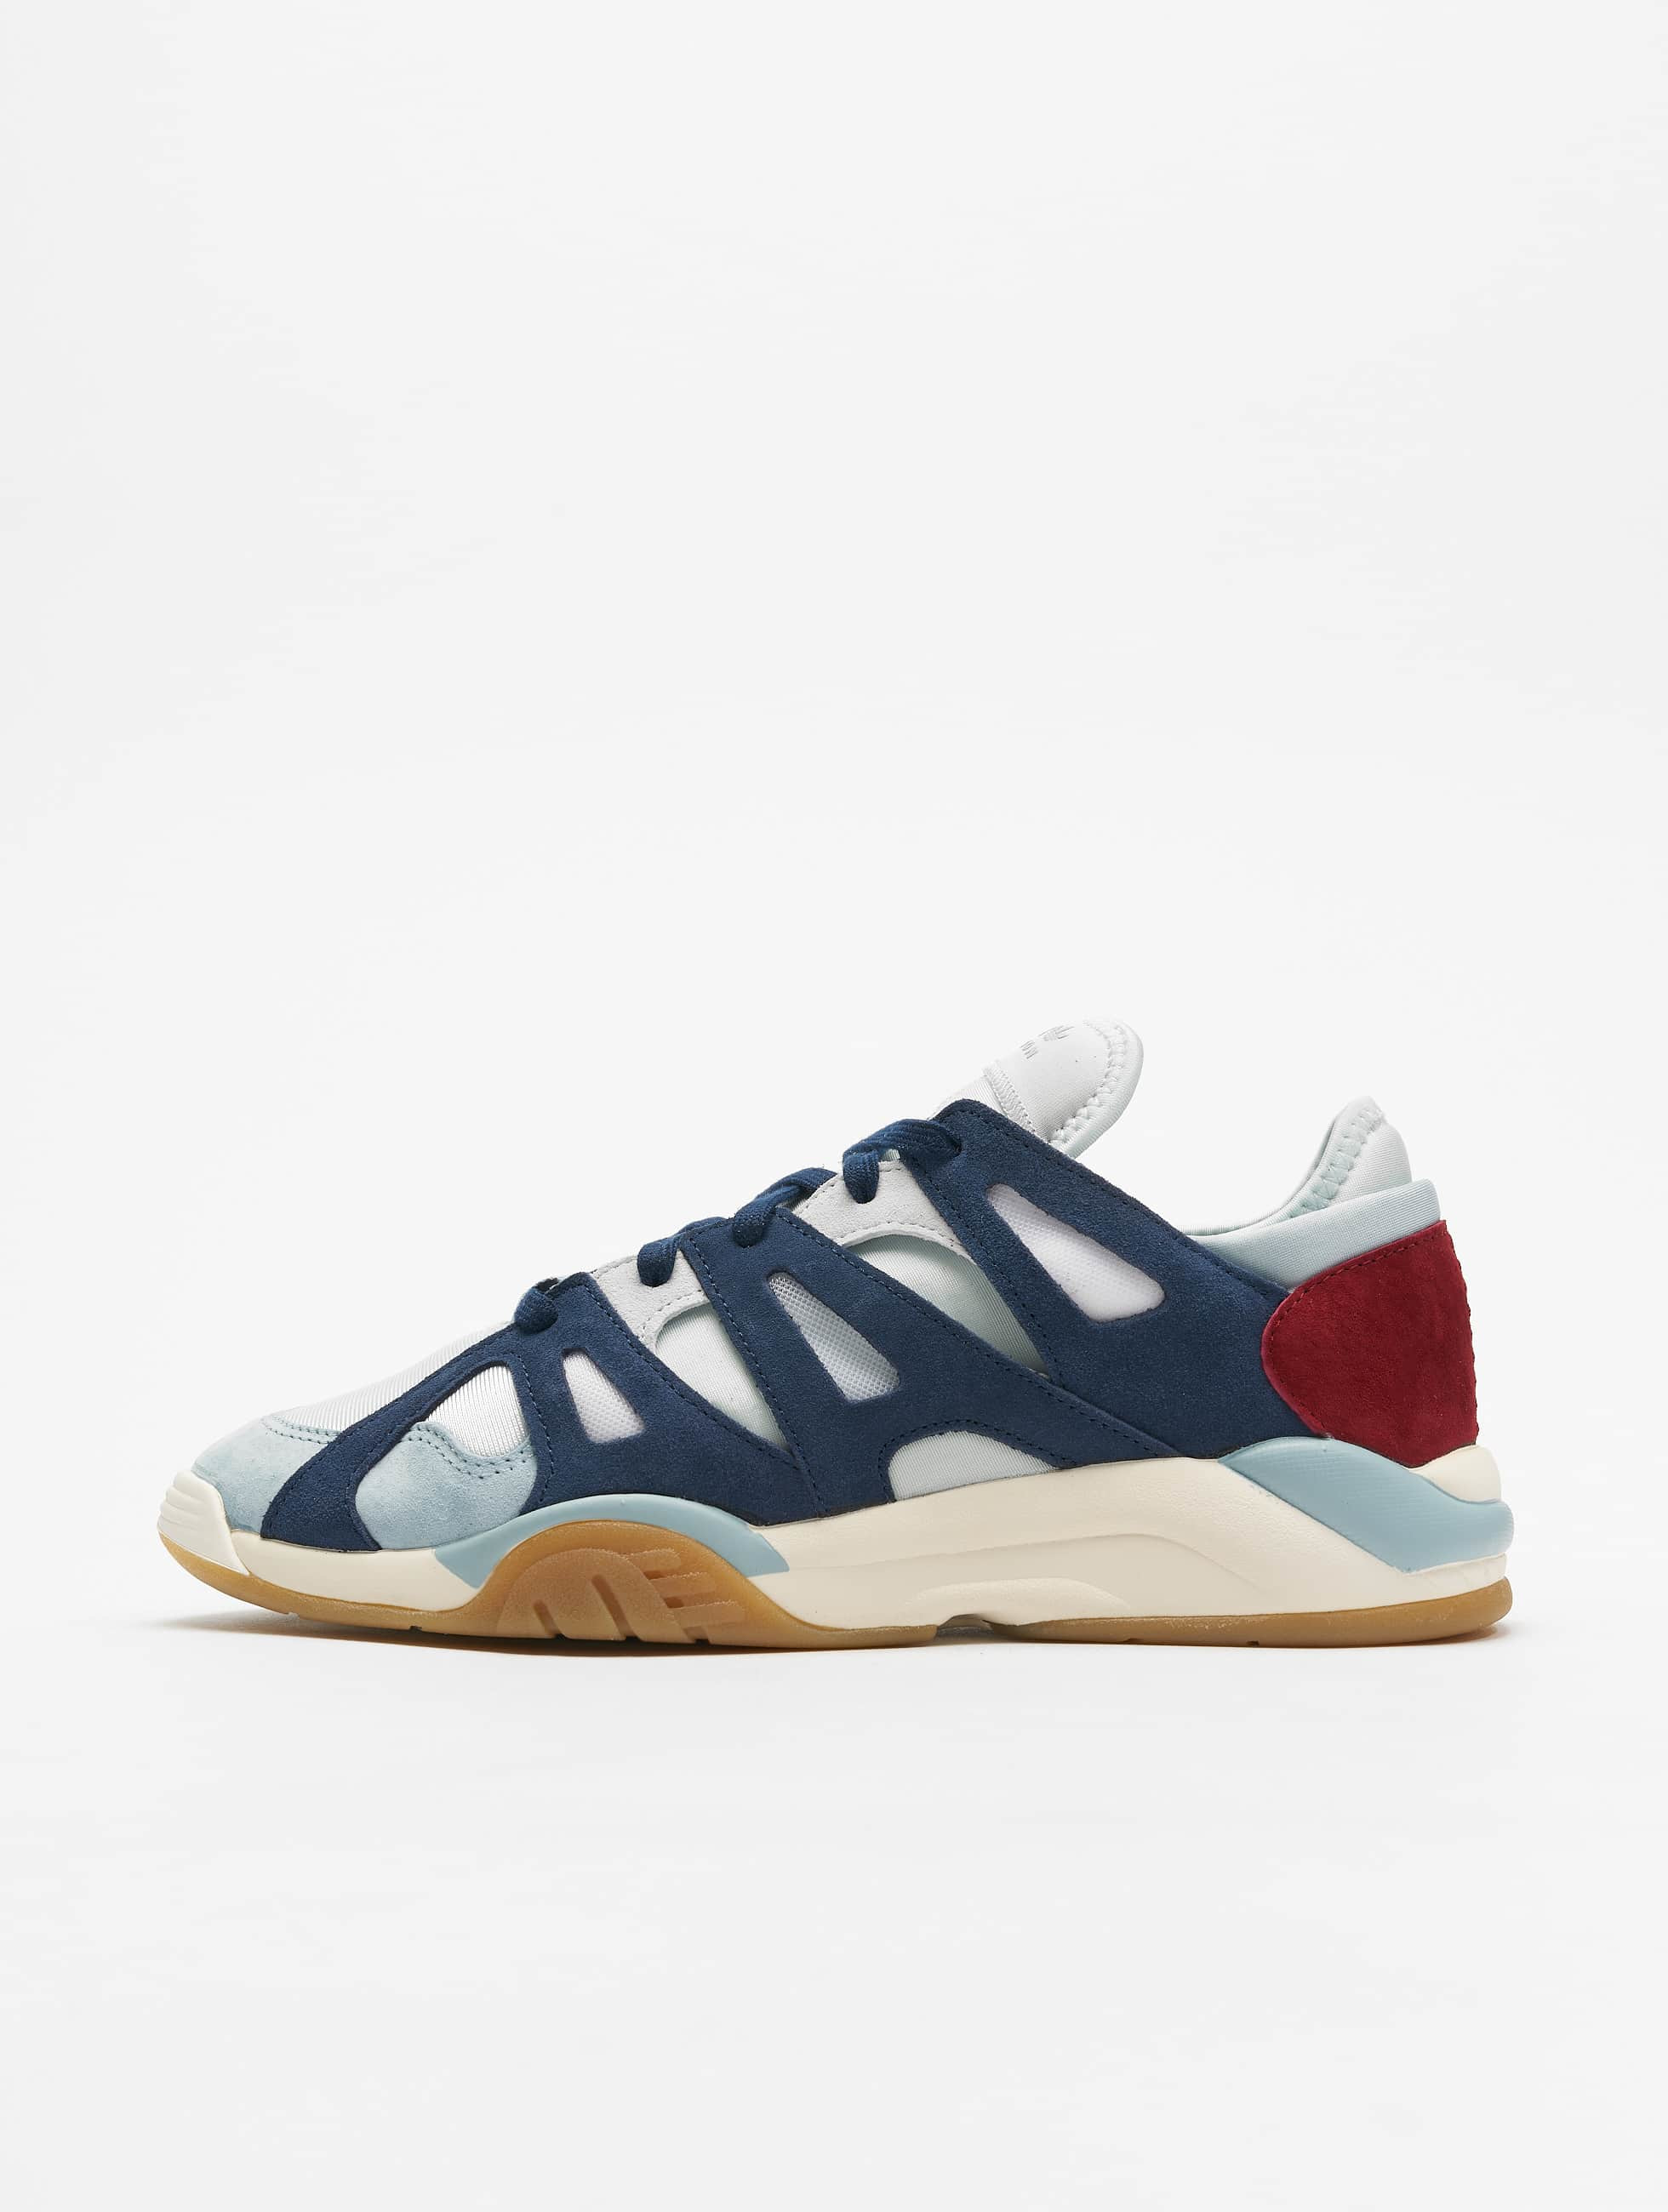 adidas Originals Dimension Low Sneakers Ash GreyBlue TintCollegiate Navy